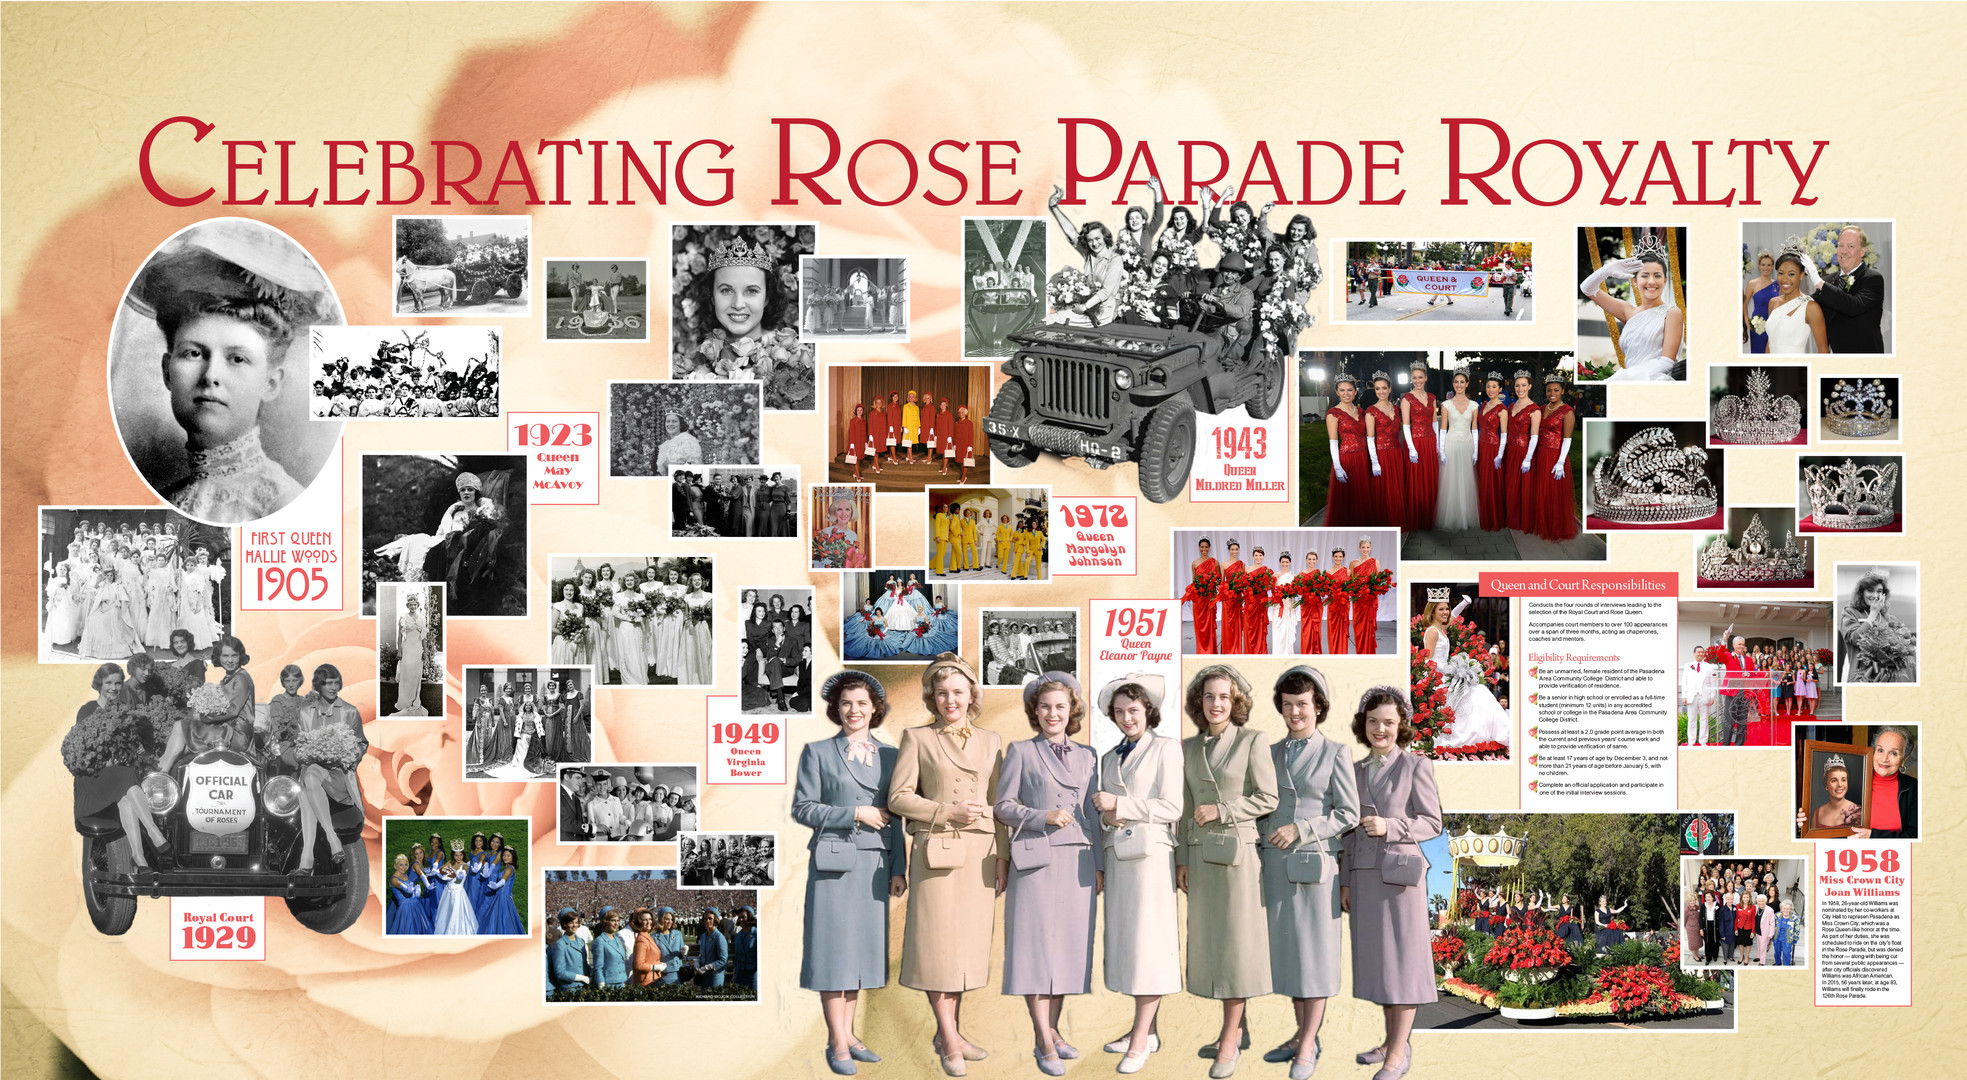 Celebrating Rose Parade Royalty